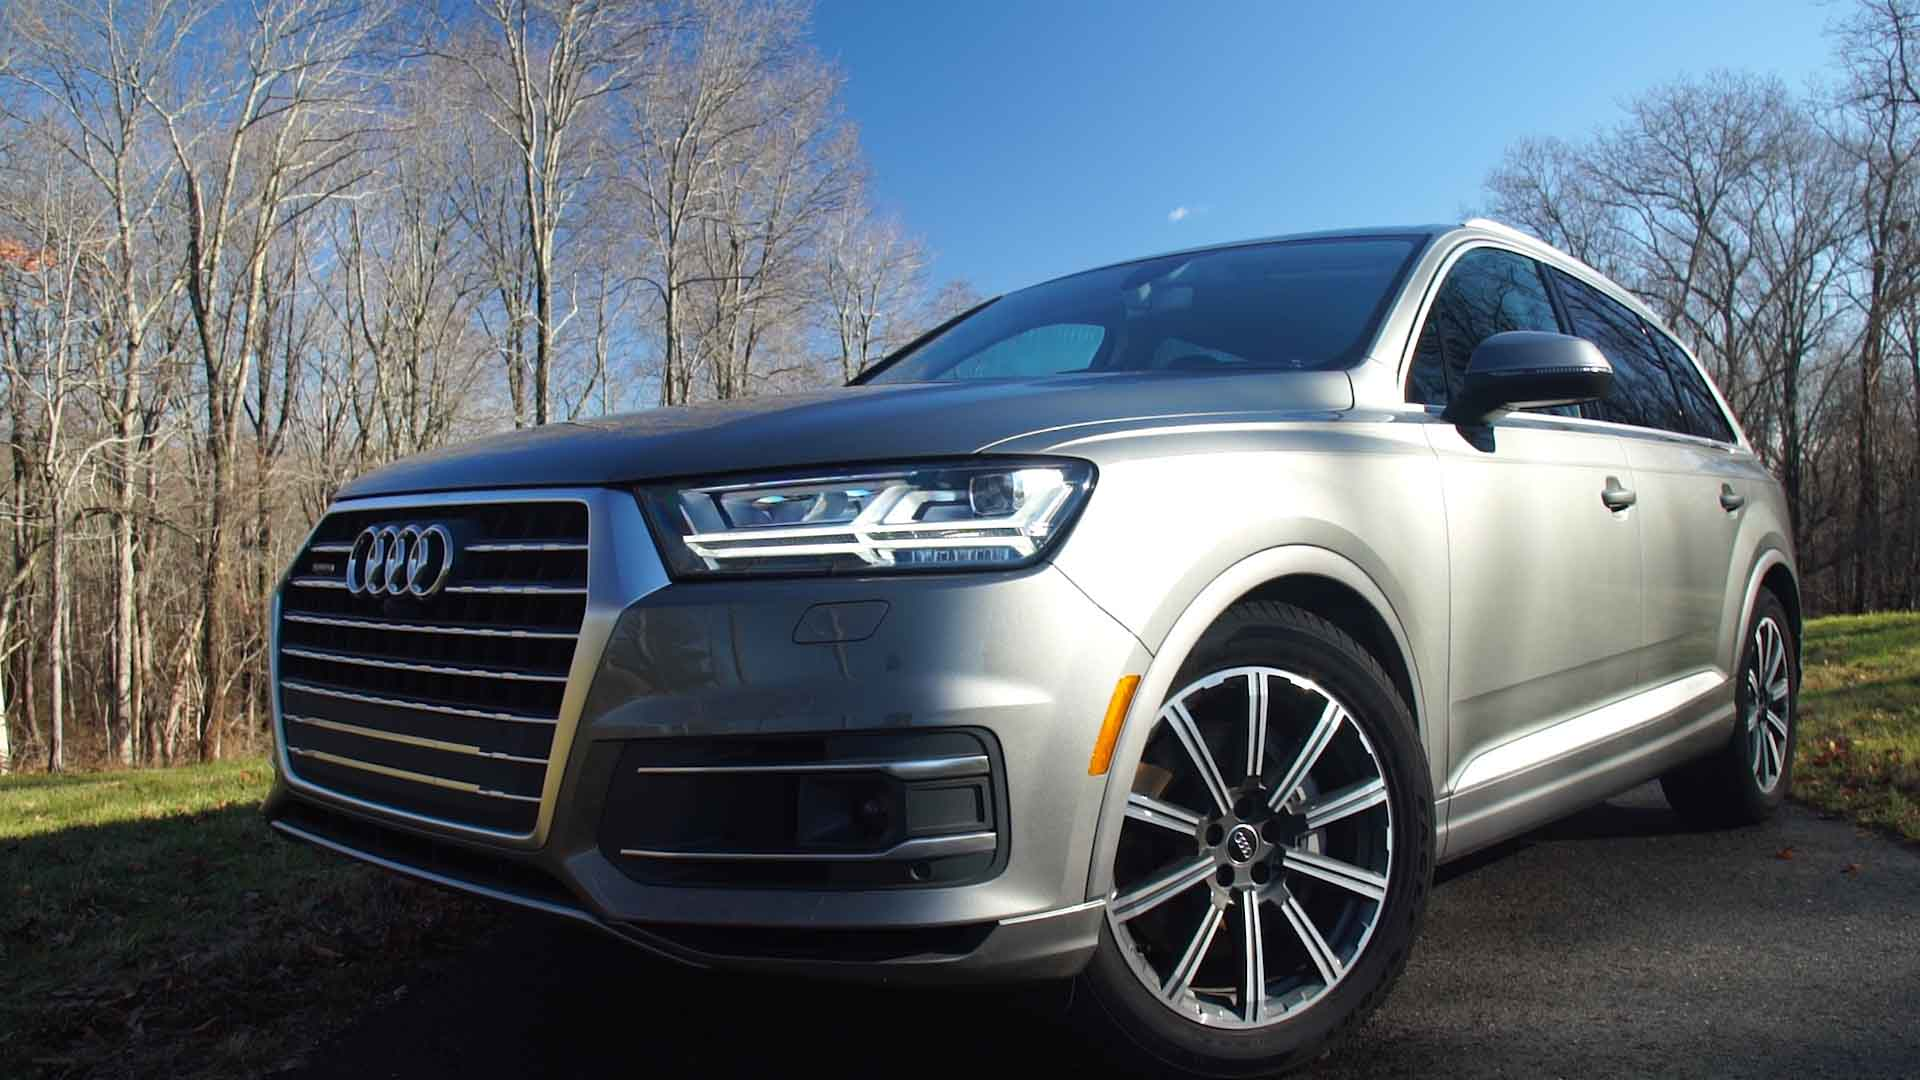 Audi Q Reviews Ratings Prices Consumer Reports - How much is an audi q7